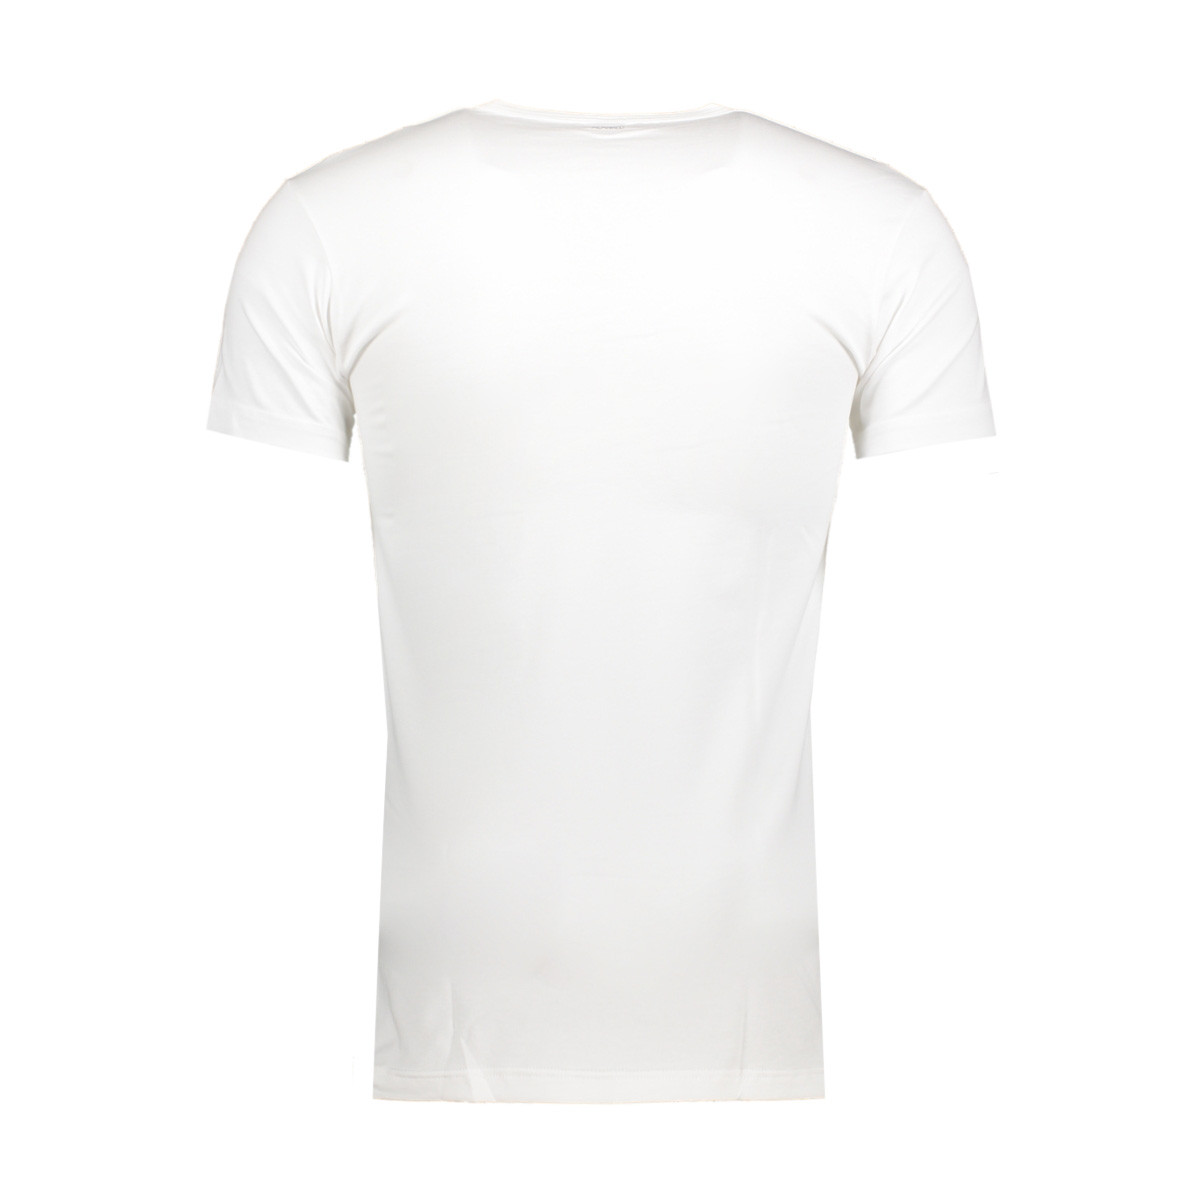 6680 ottowa 2 pack alan red t-shirt white